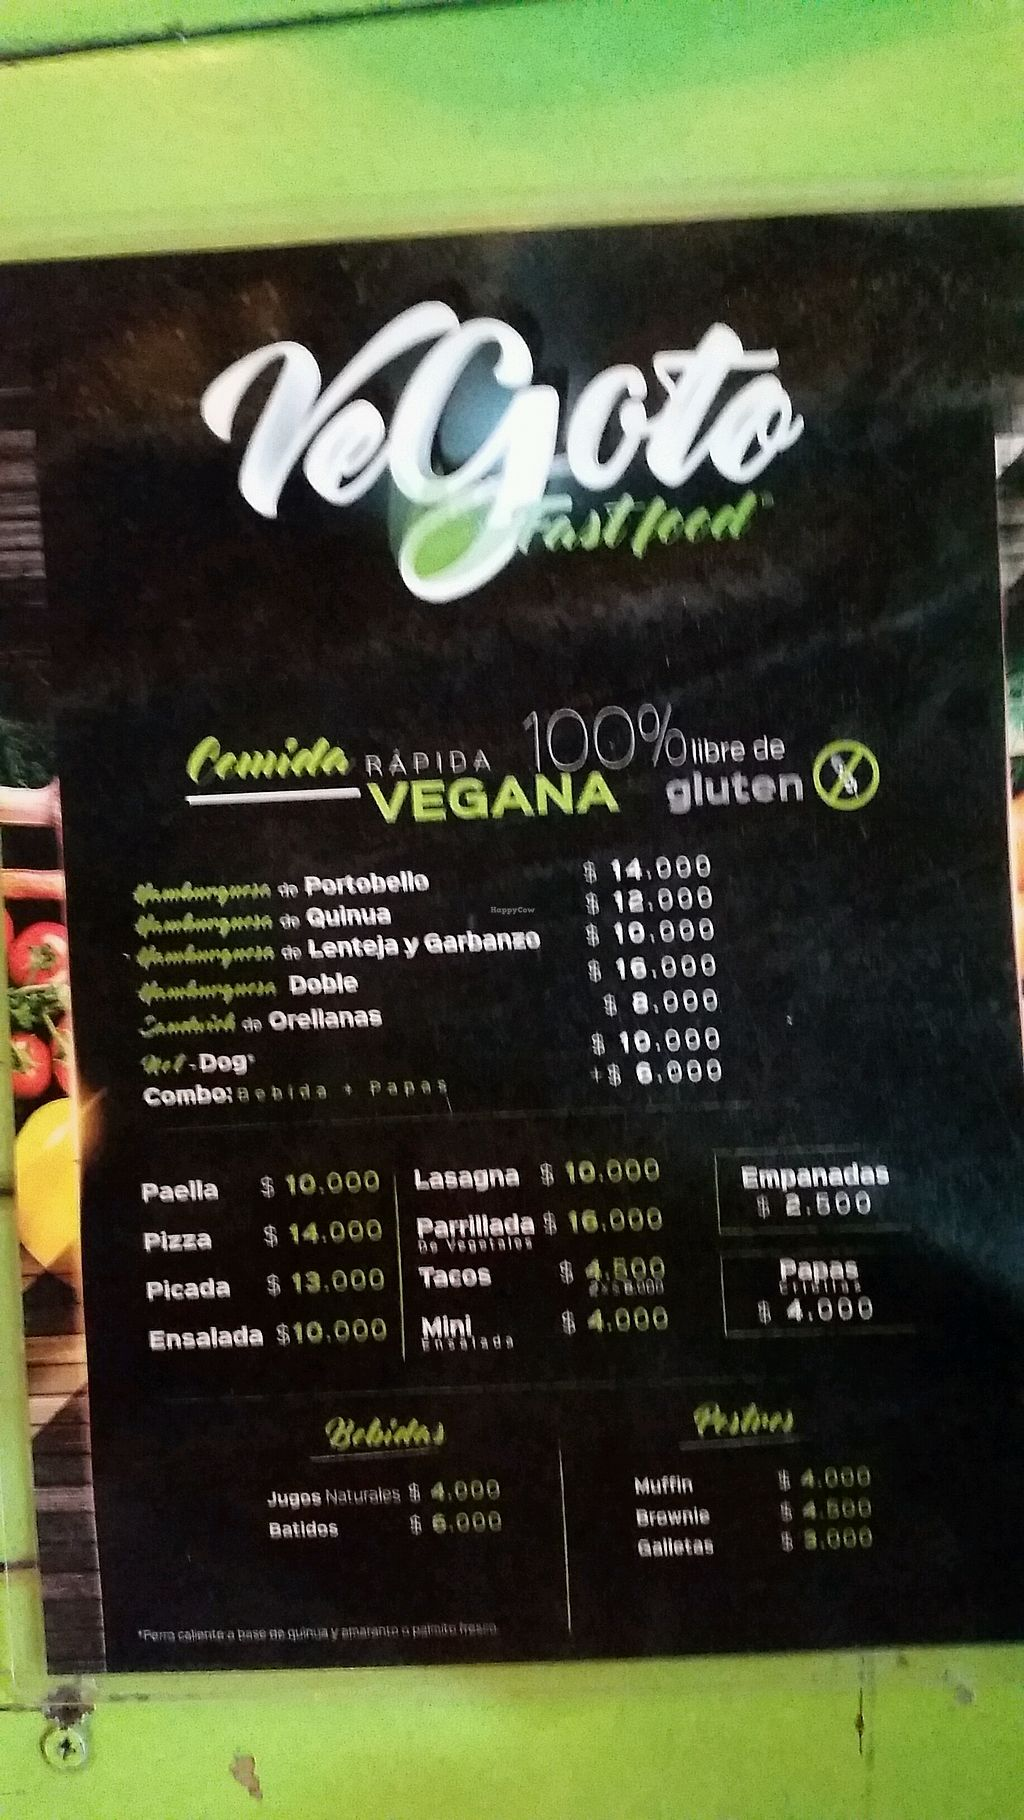 "Photo of Vegoto fast food  by <a href=""/members/profile/DrBB"">DrBB</a> <br/>menu <br/> March 2, 2018  - <a href='/contact/abuse/image/102301/365560'>Report</a>"